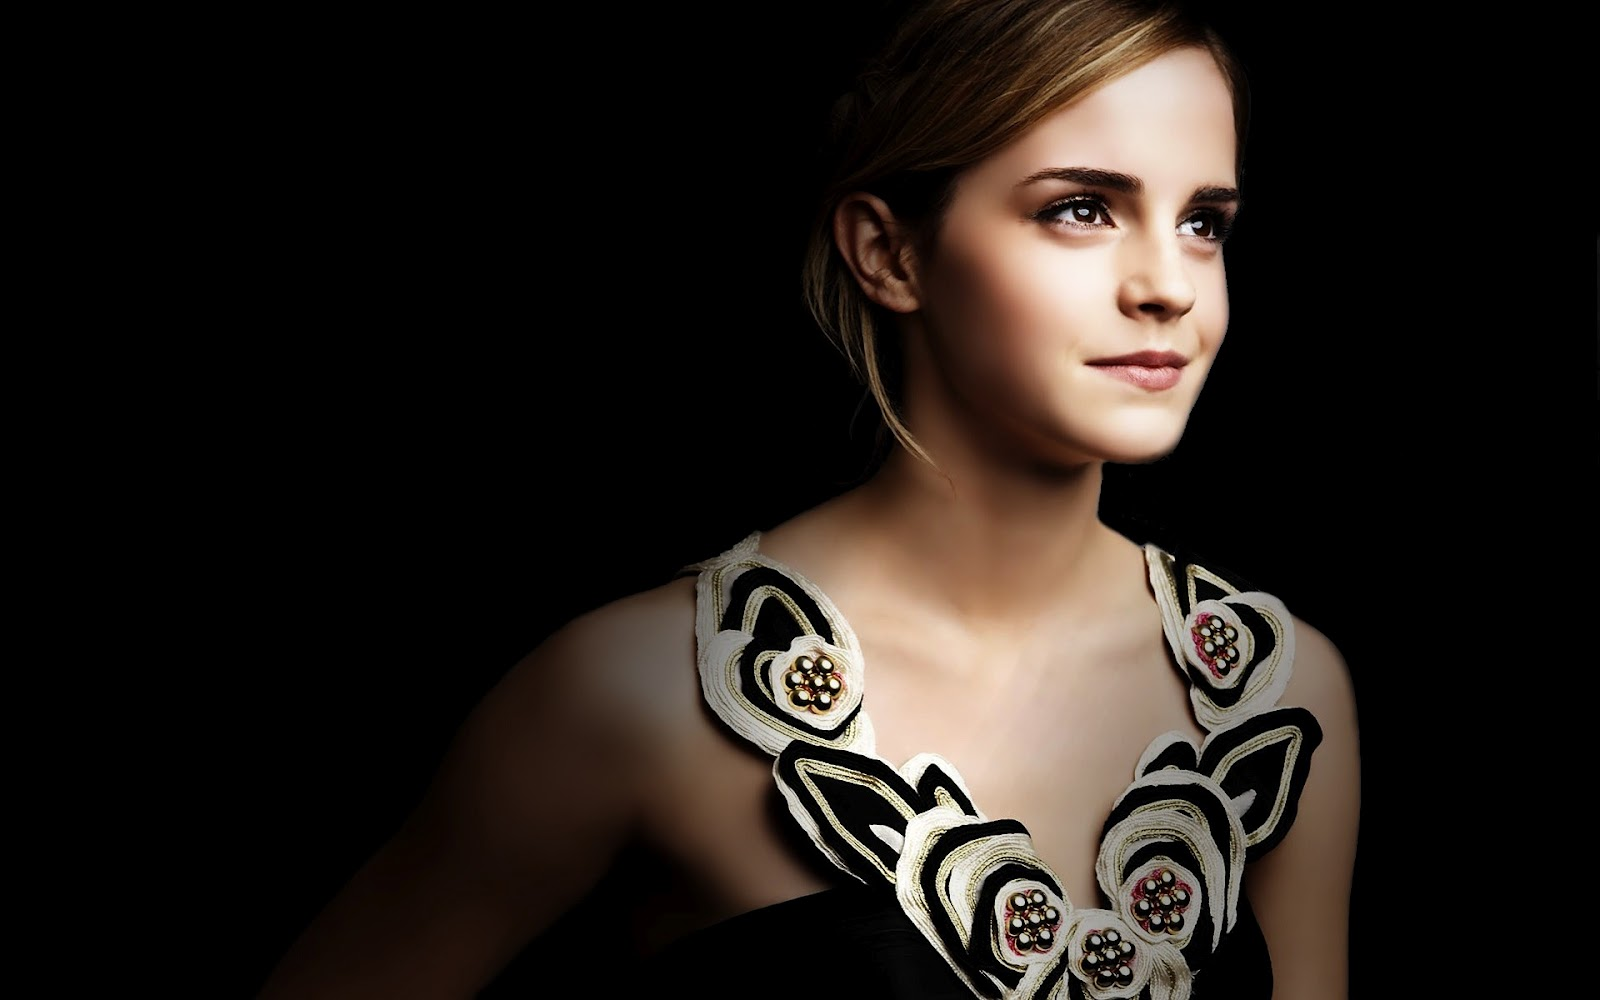 Hollywood celebrities emma watson hot pictures gallery 2012 - Emma watson wallpaper ...